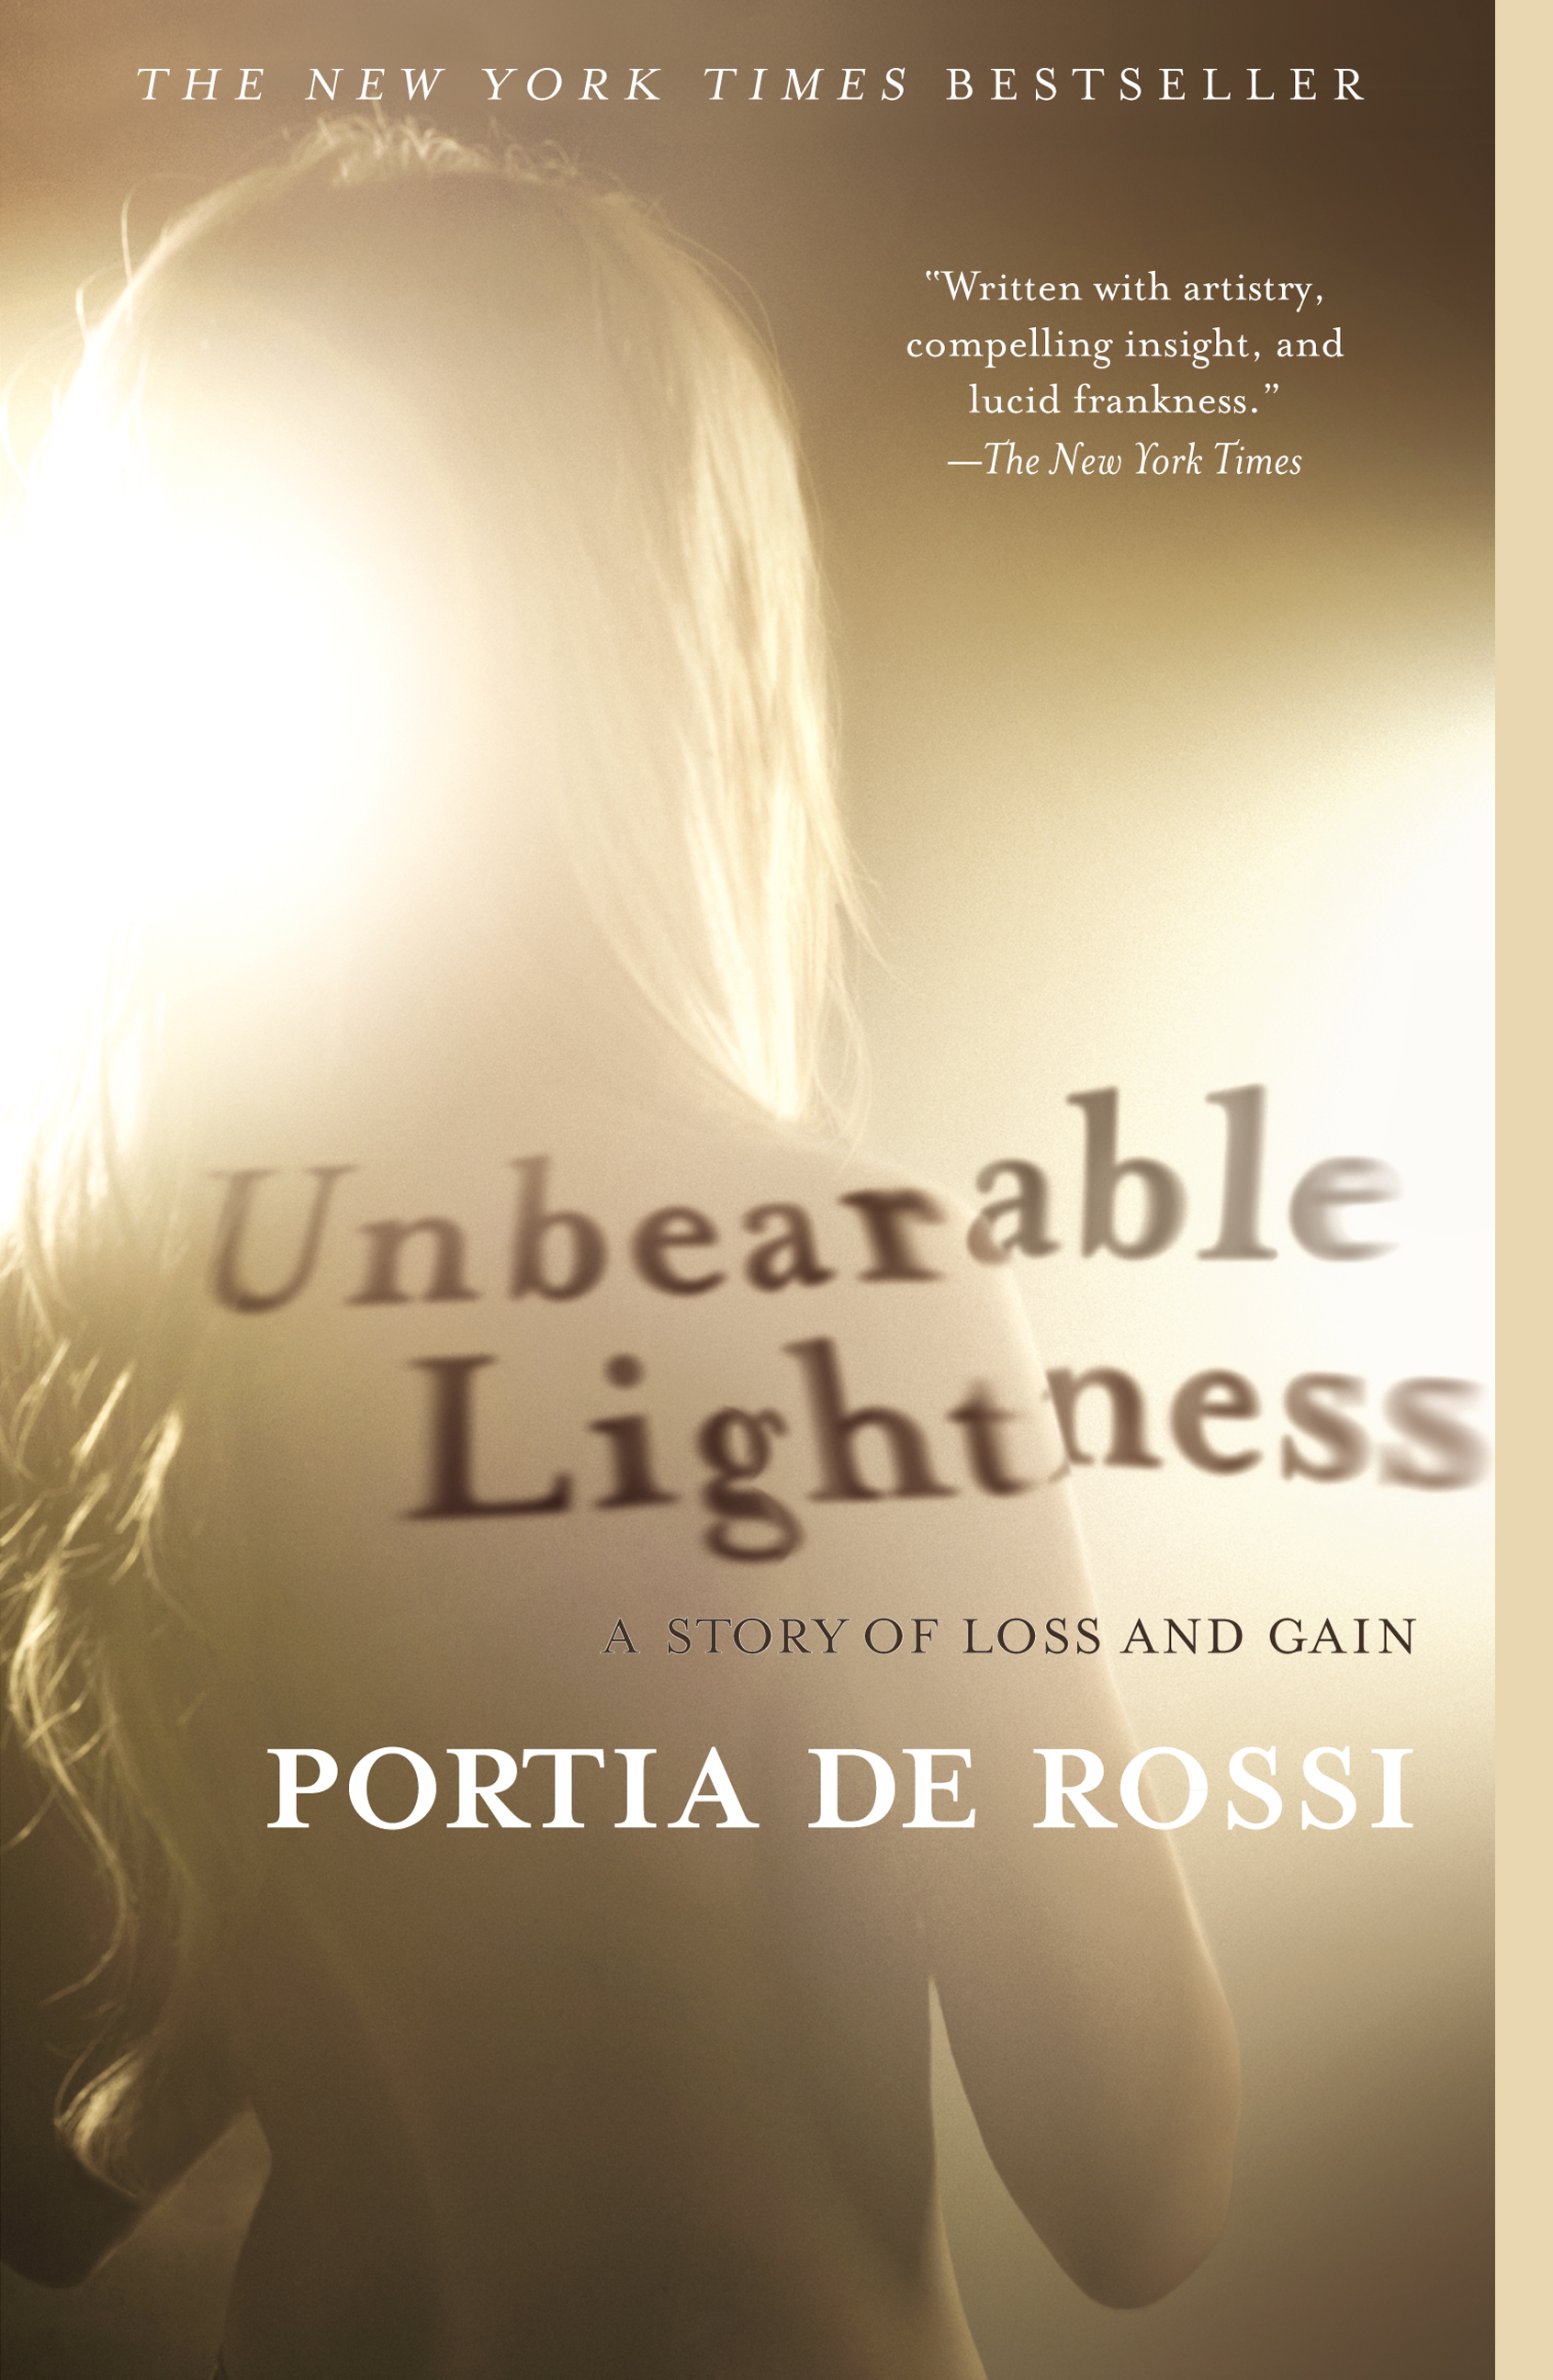 Unbearable lightness by portia de rossi pdf